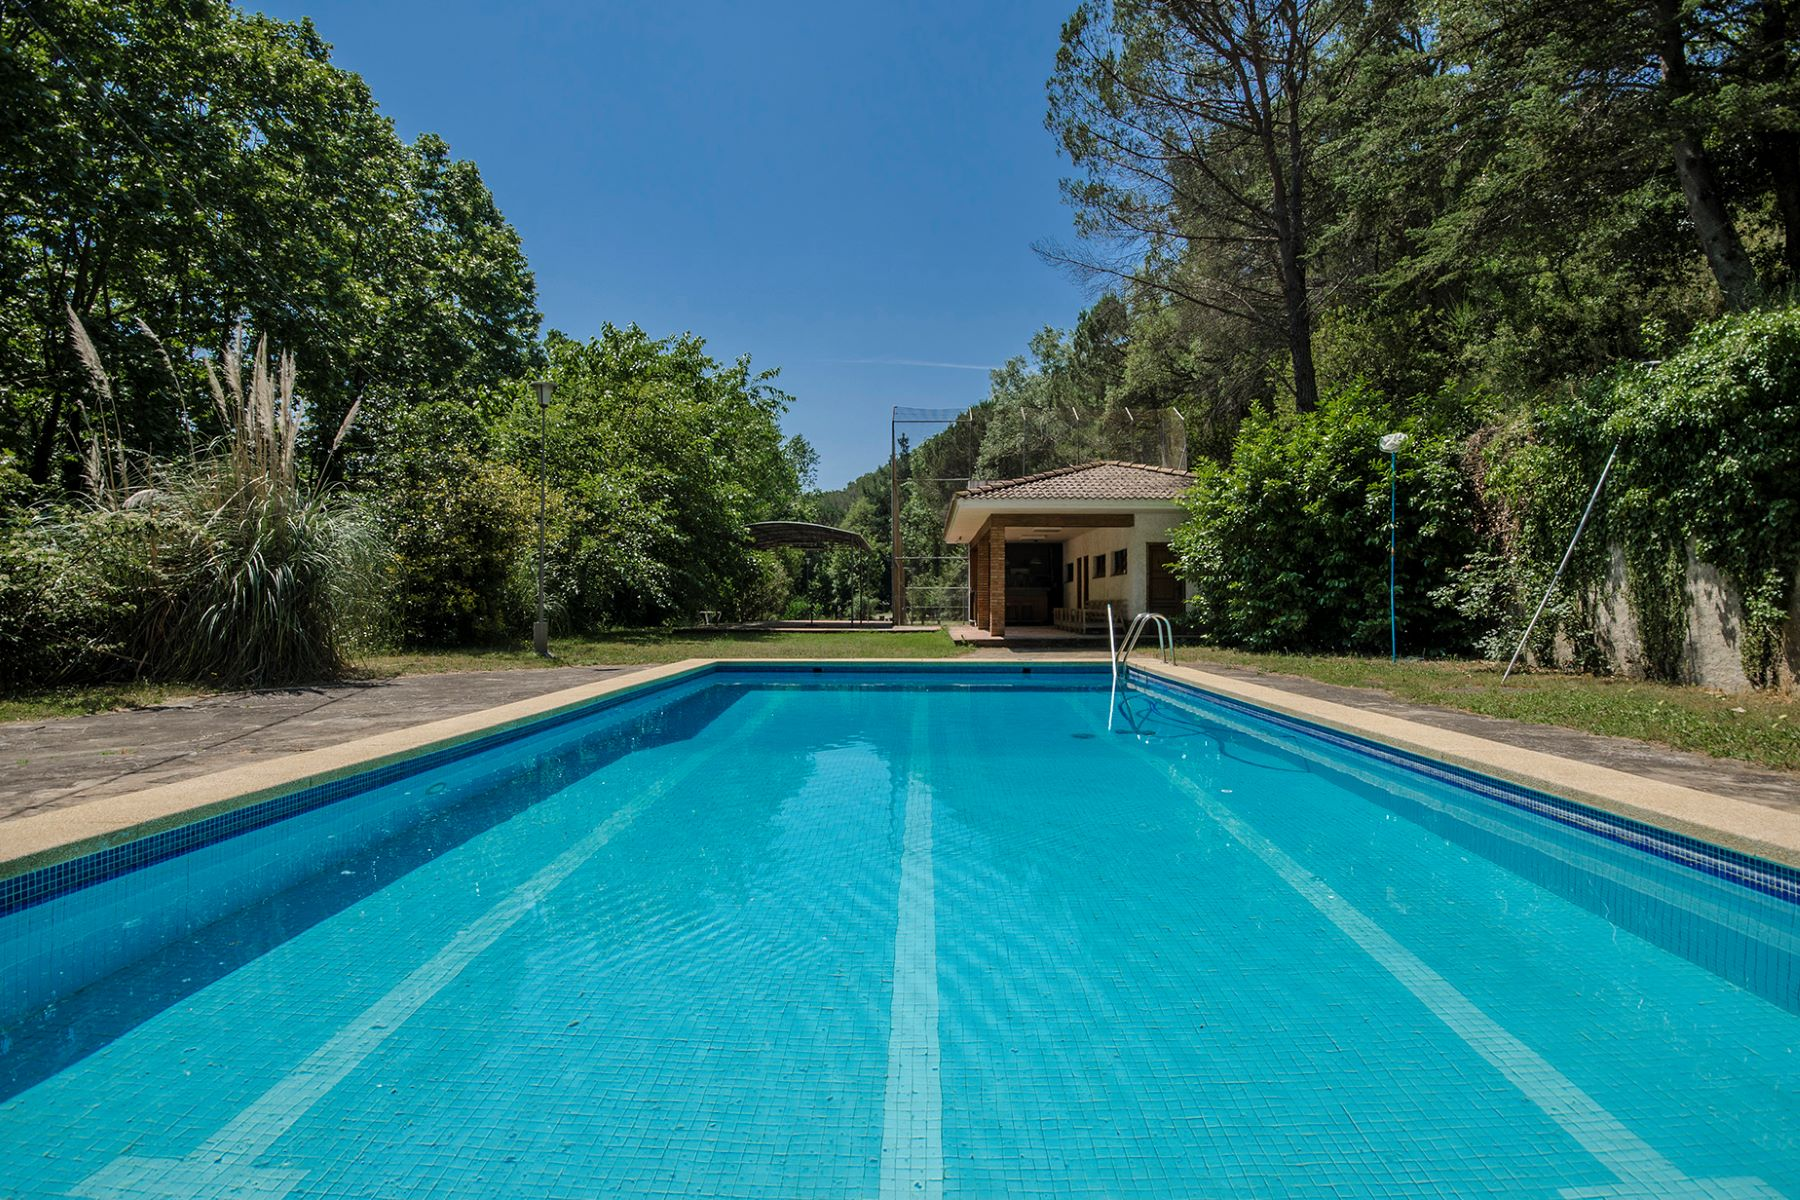 Single Family Home for Sale at Idyllic villa in the middle of nature Other Cities Barcelona North Coast, Barcelona, 08328 Spain